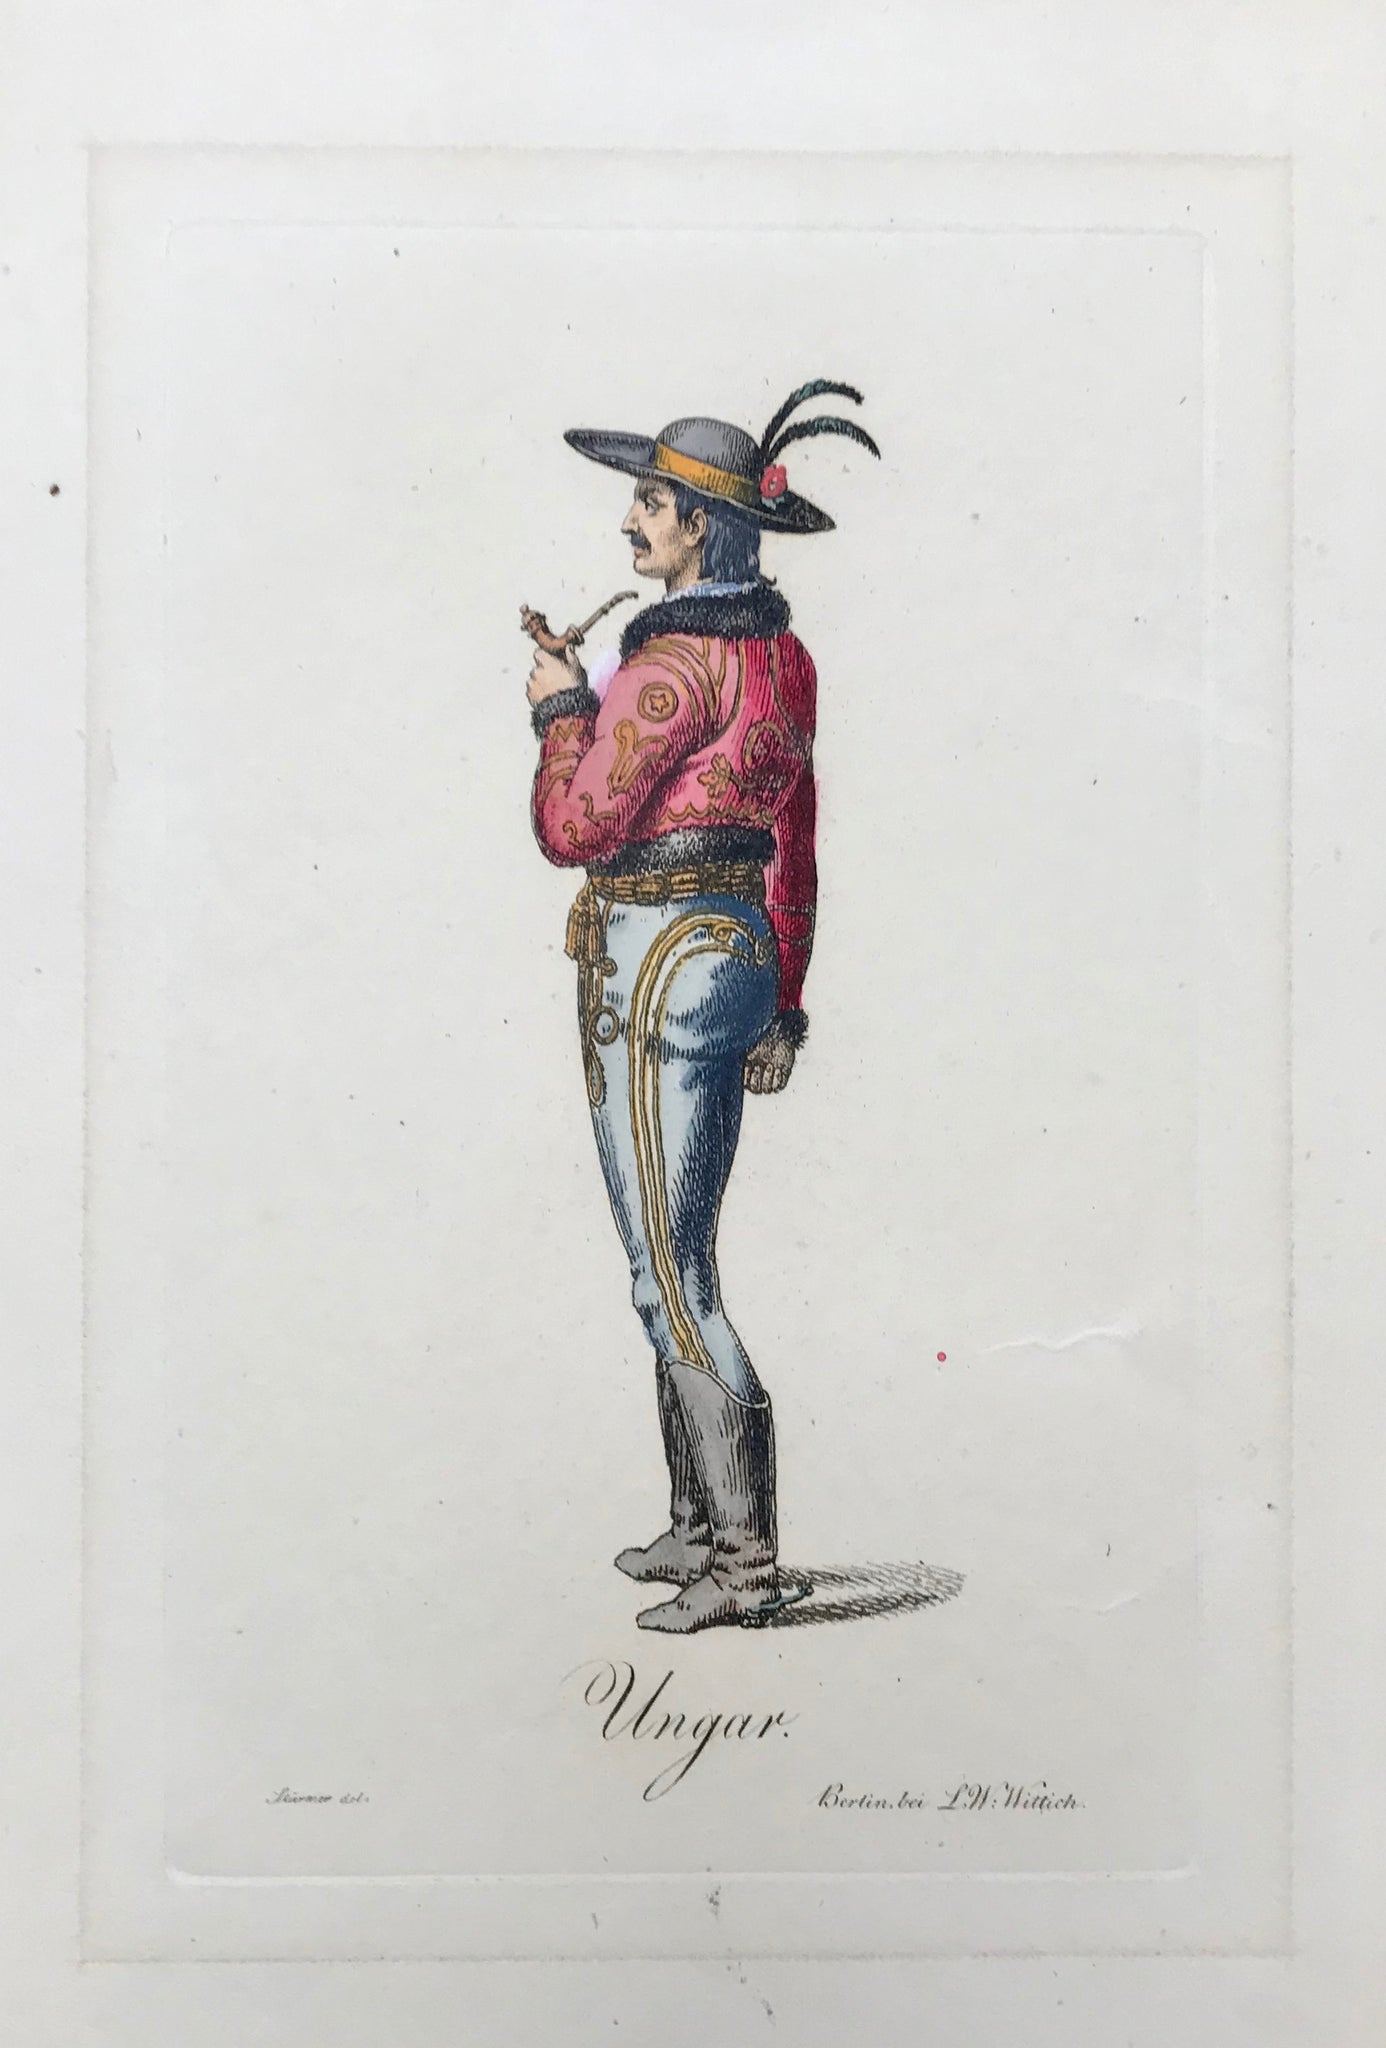 Ungar  Stipple-line engraving by Bertini after Stuermer, 1822. Original hand coloring.